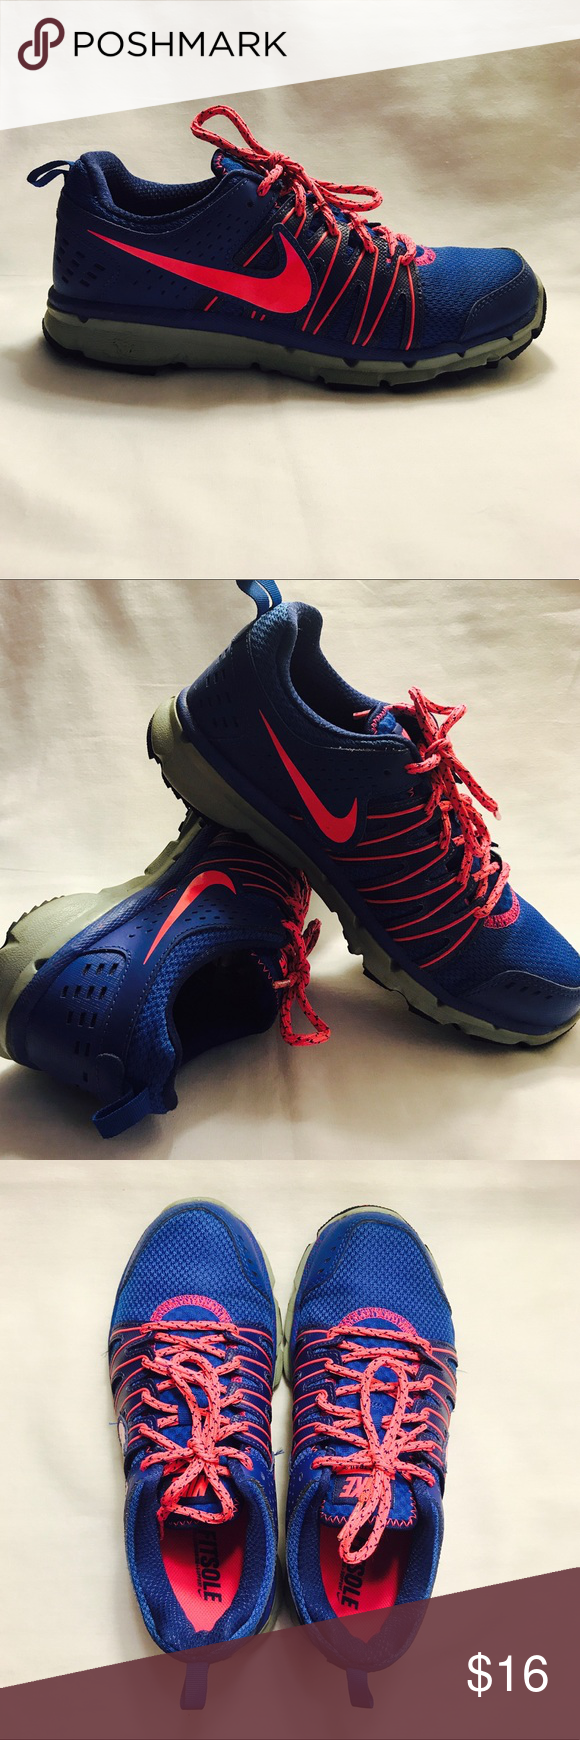 04e8e7c641fda Nike Flex Trail 2 Running Shoes Synthetic-And-Mesh. Rubber sole. Features  FitSole inner cushion. Could use some minimal cleaning